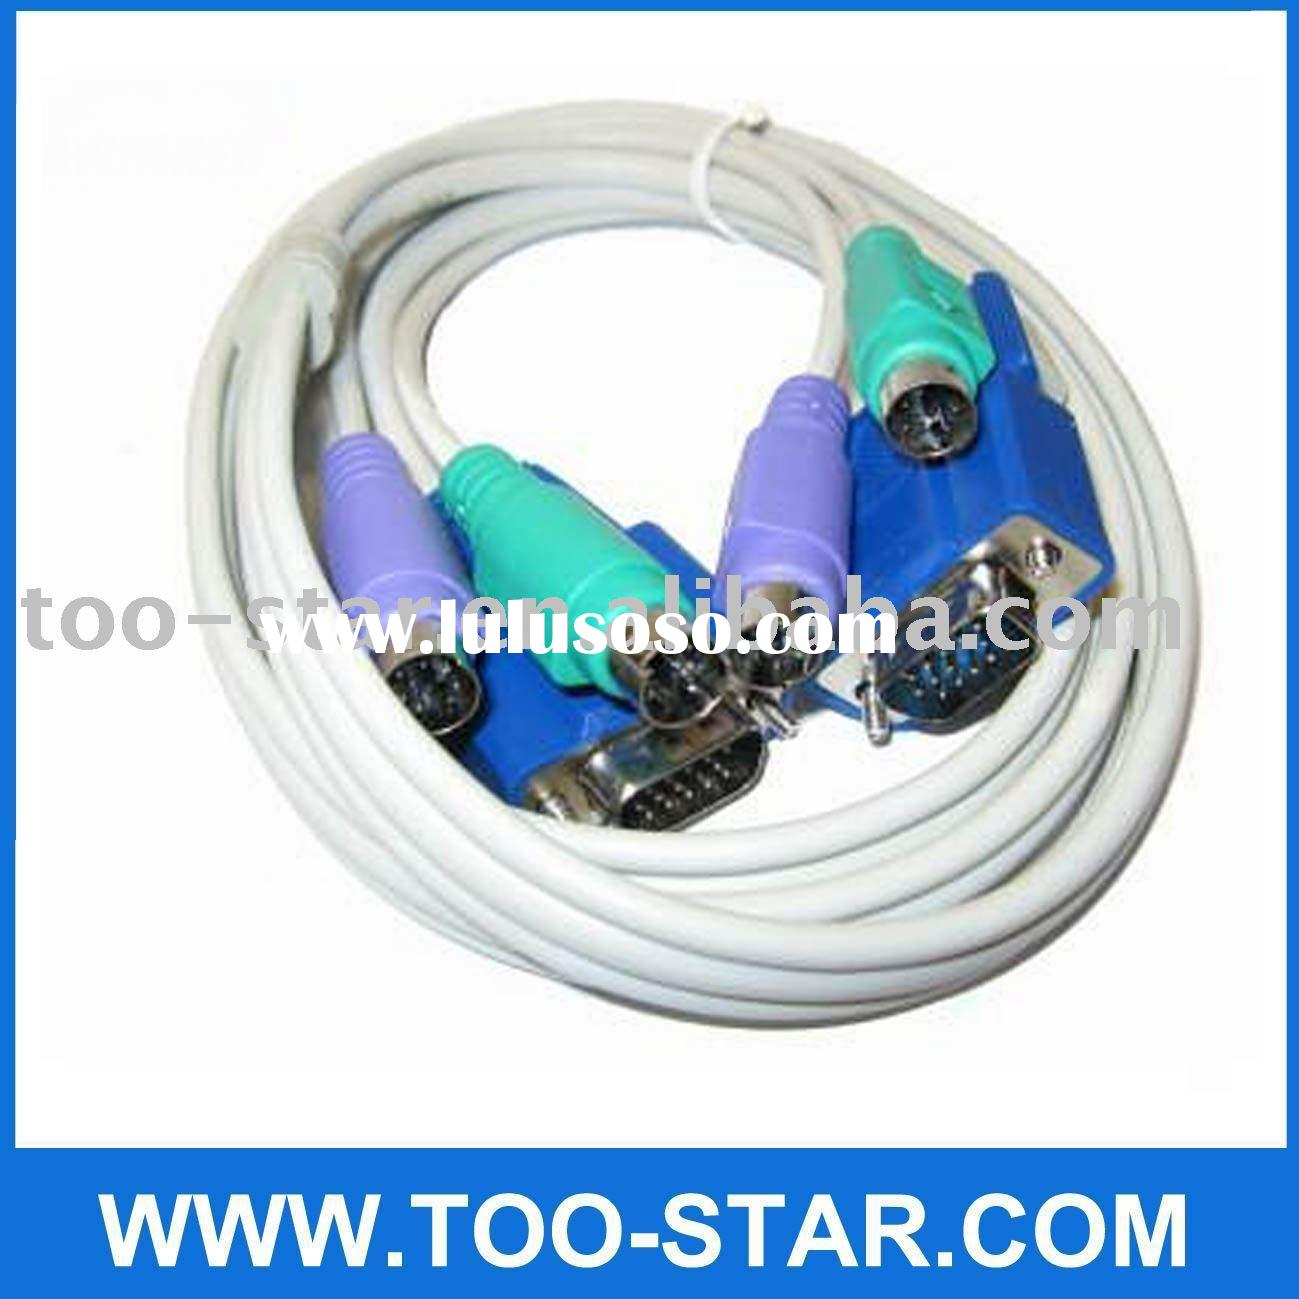 KVM VGA Male to Male PS2 Mouse Keyboard Connect Cable